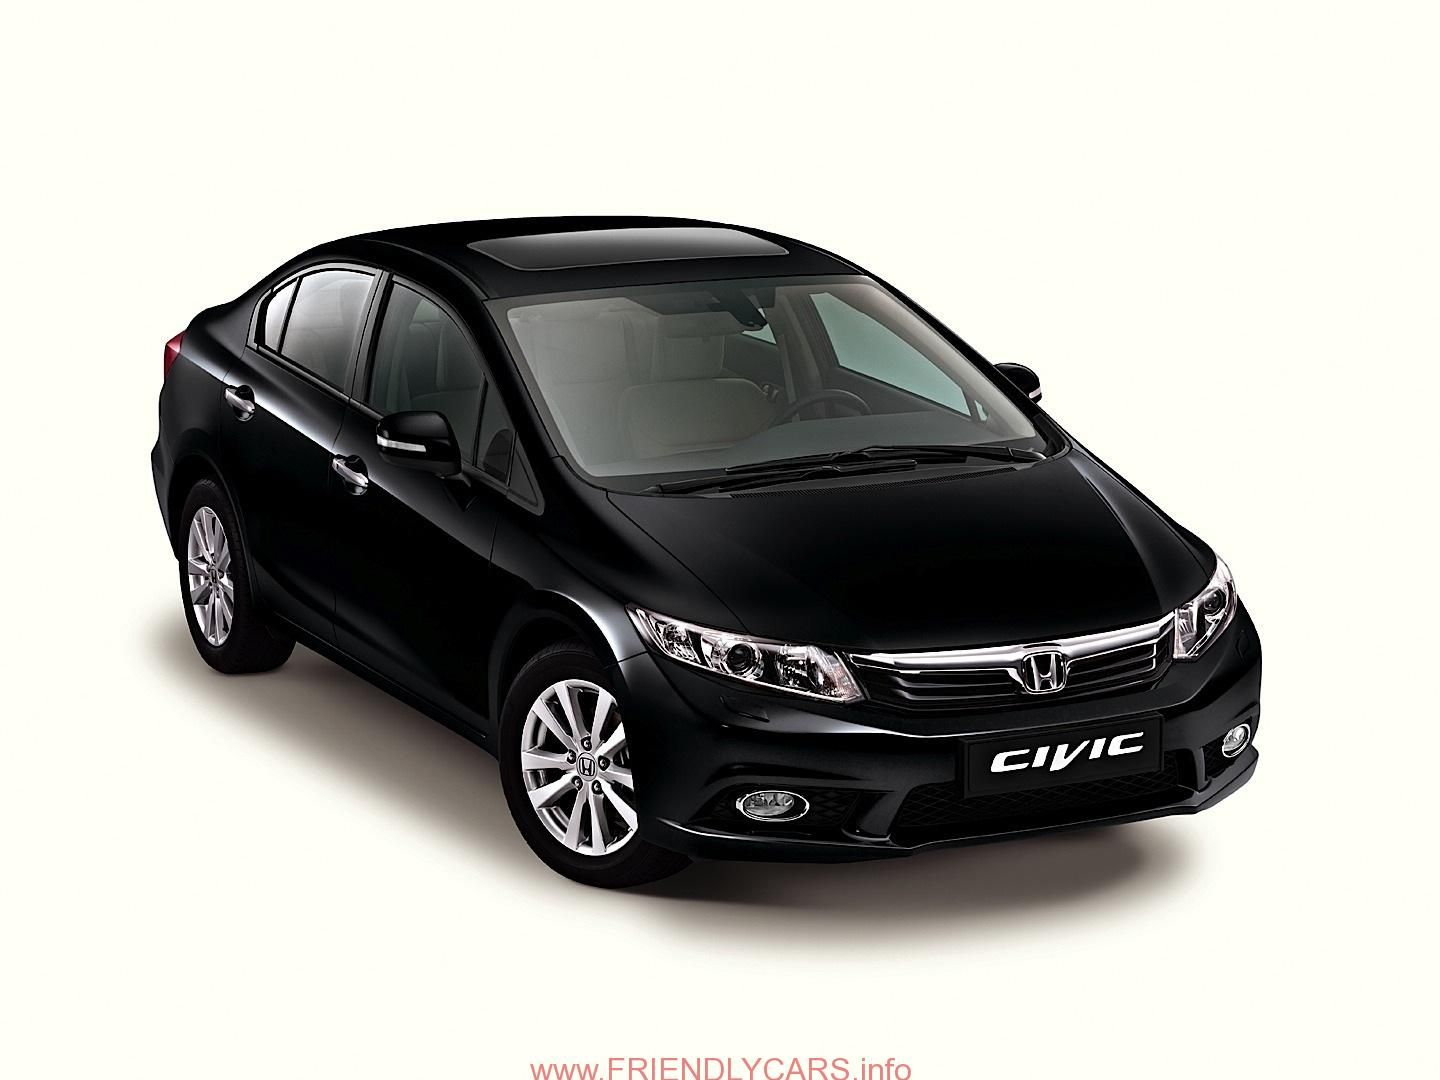 Cool honda civic 2014 silver car images hd honda civic 2012 lx silver hd launchstalker honda cars gallery pinterest honda cars car images and honda